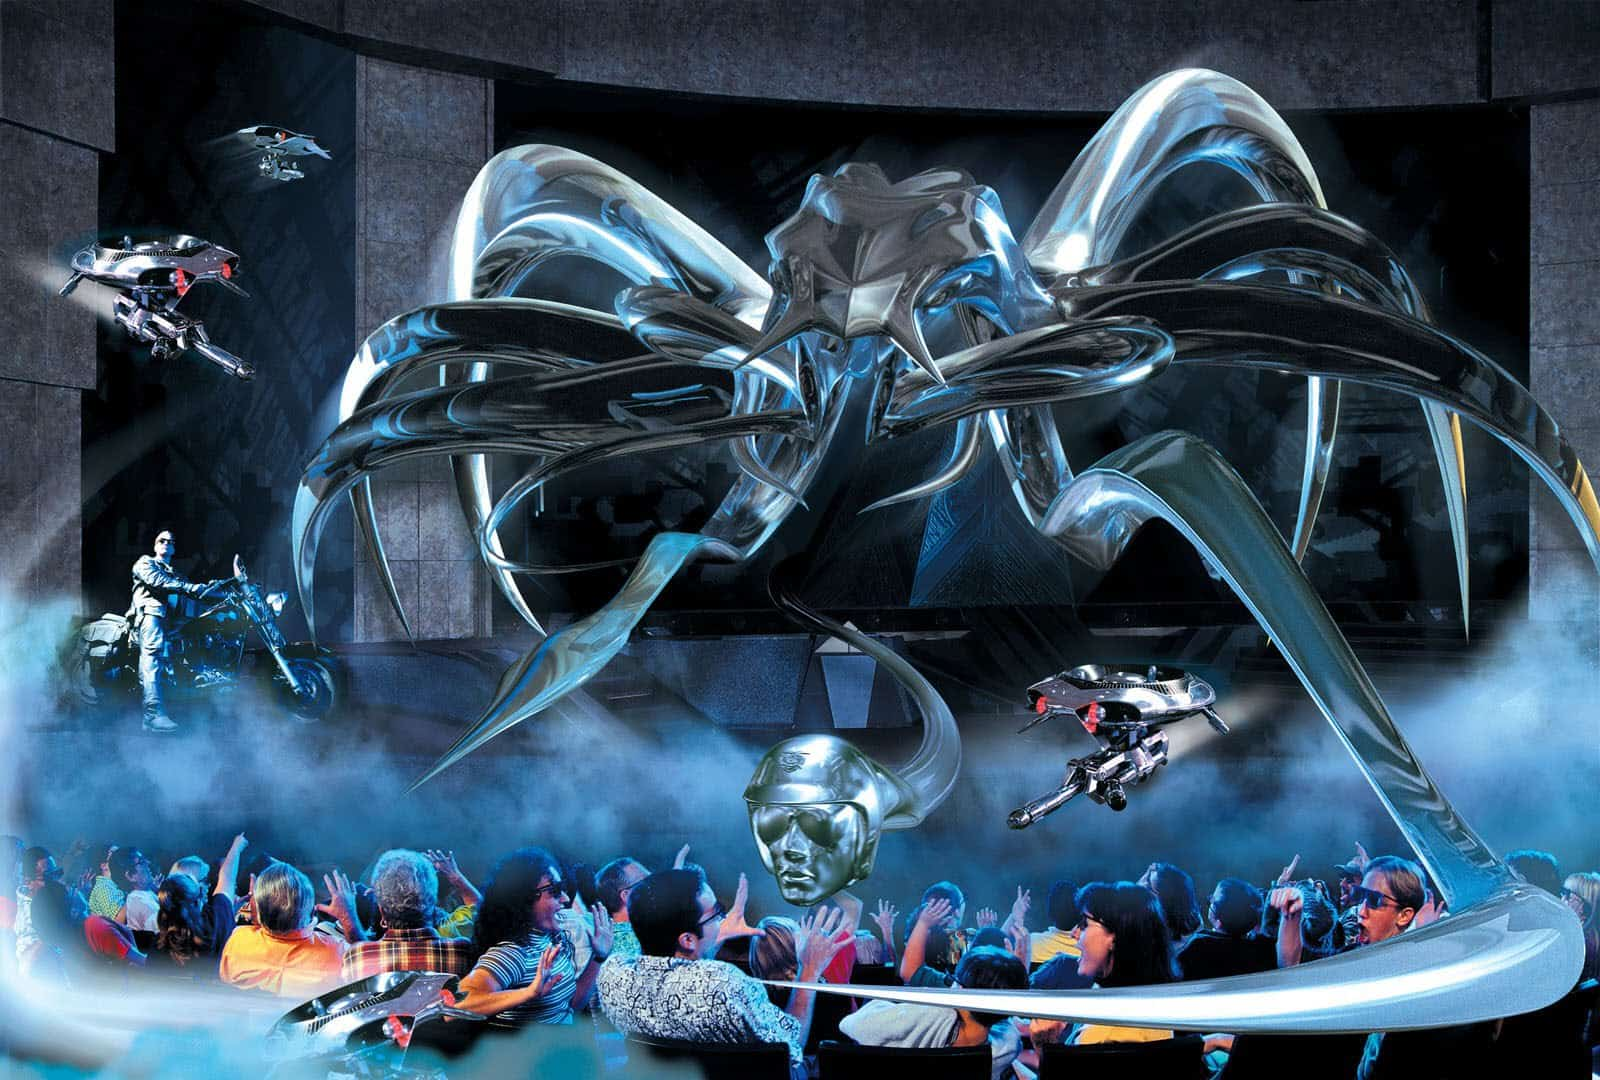 Terminator 2 3D closing for a new attraction